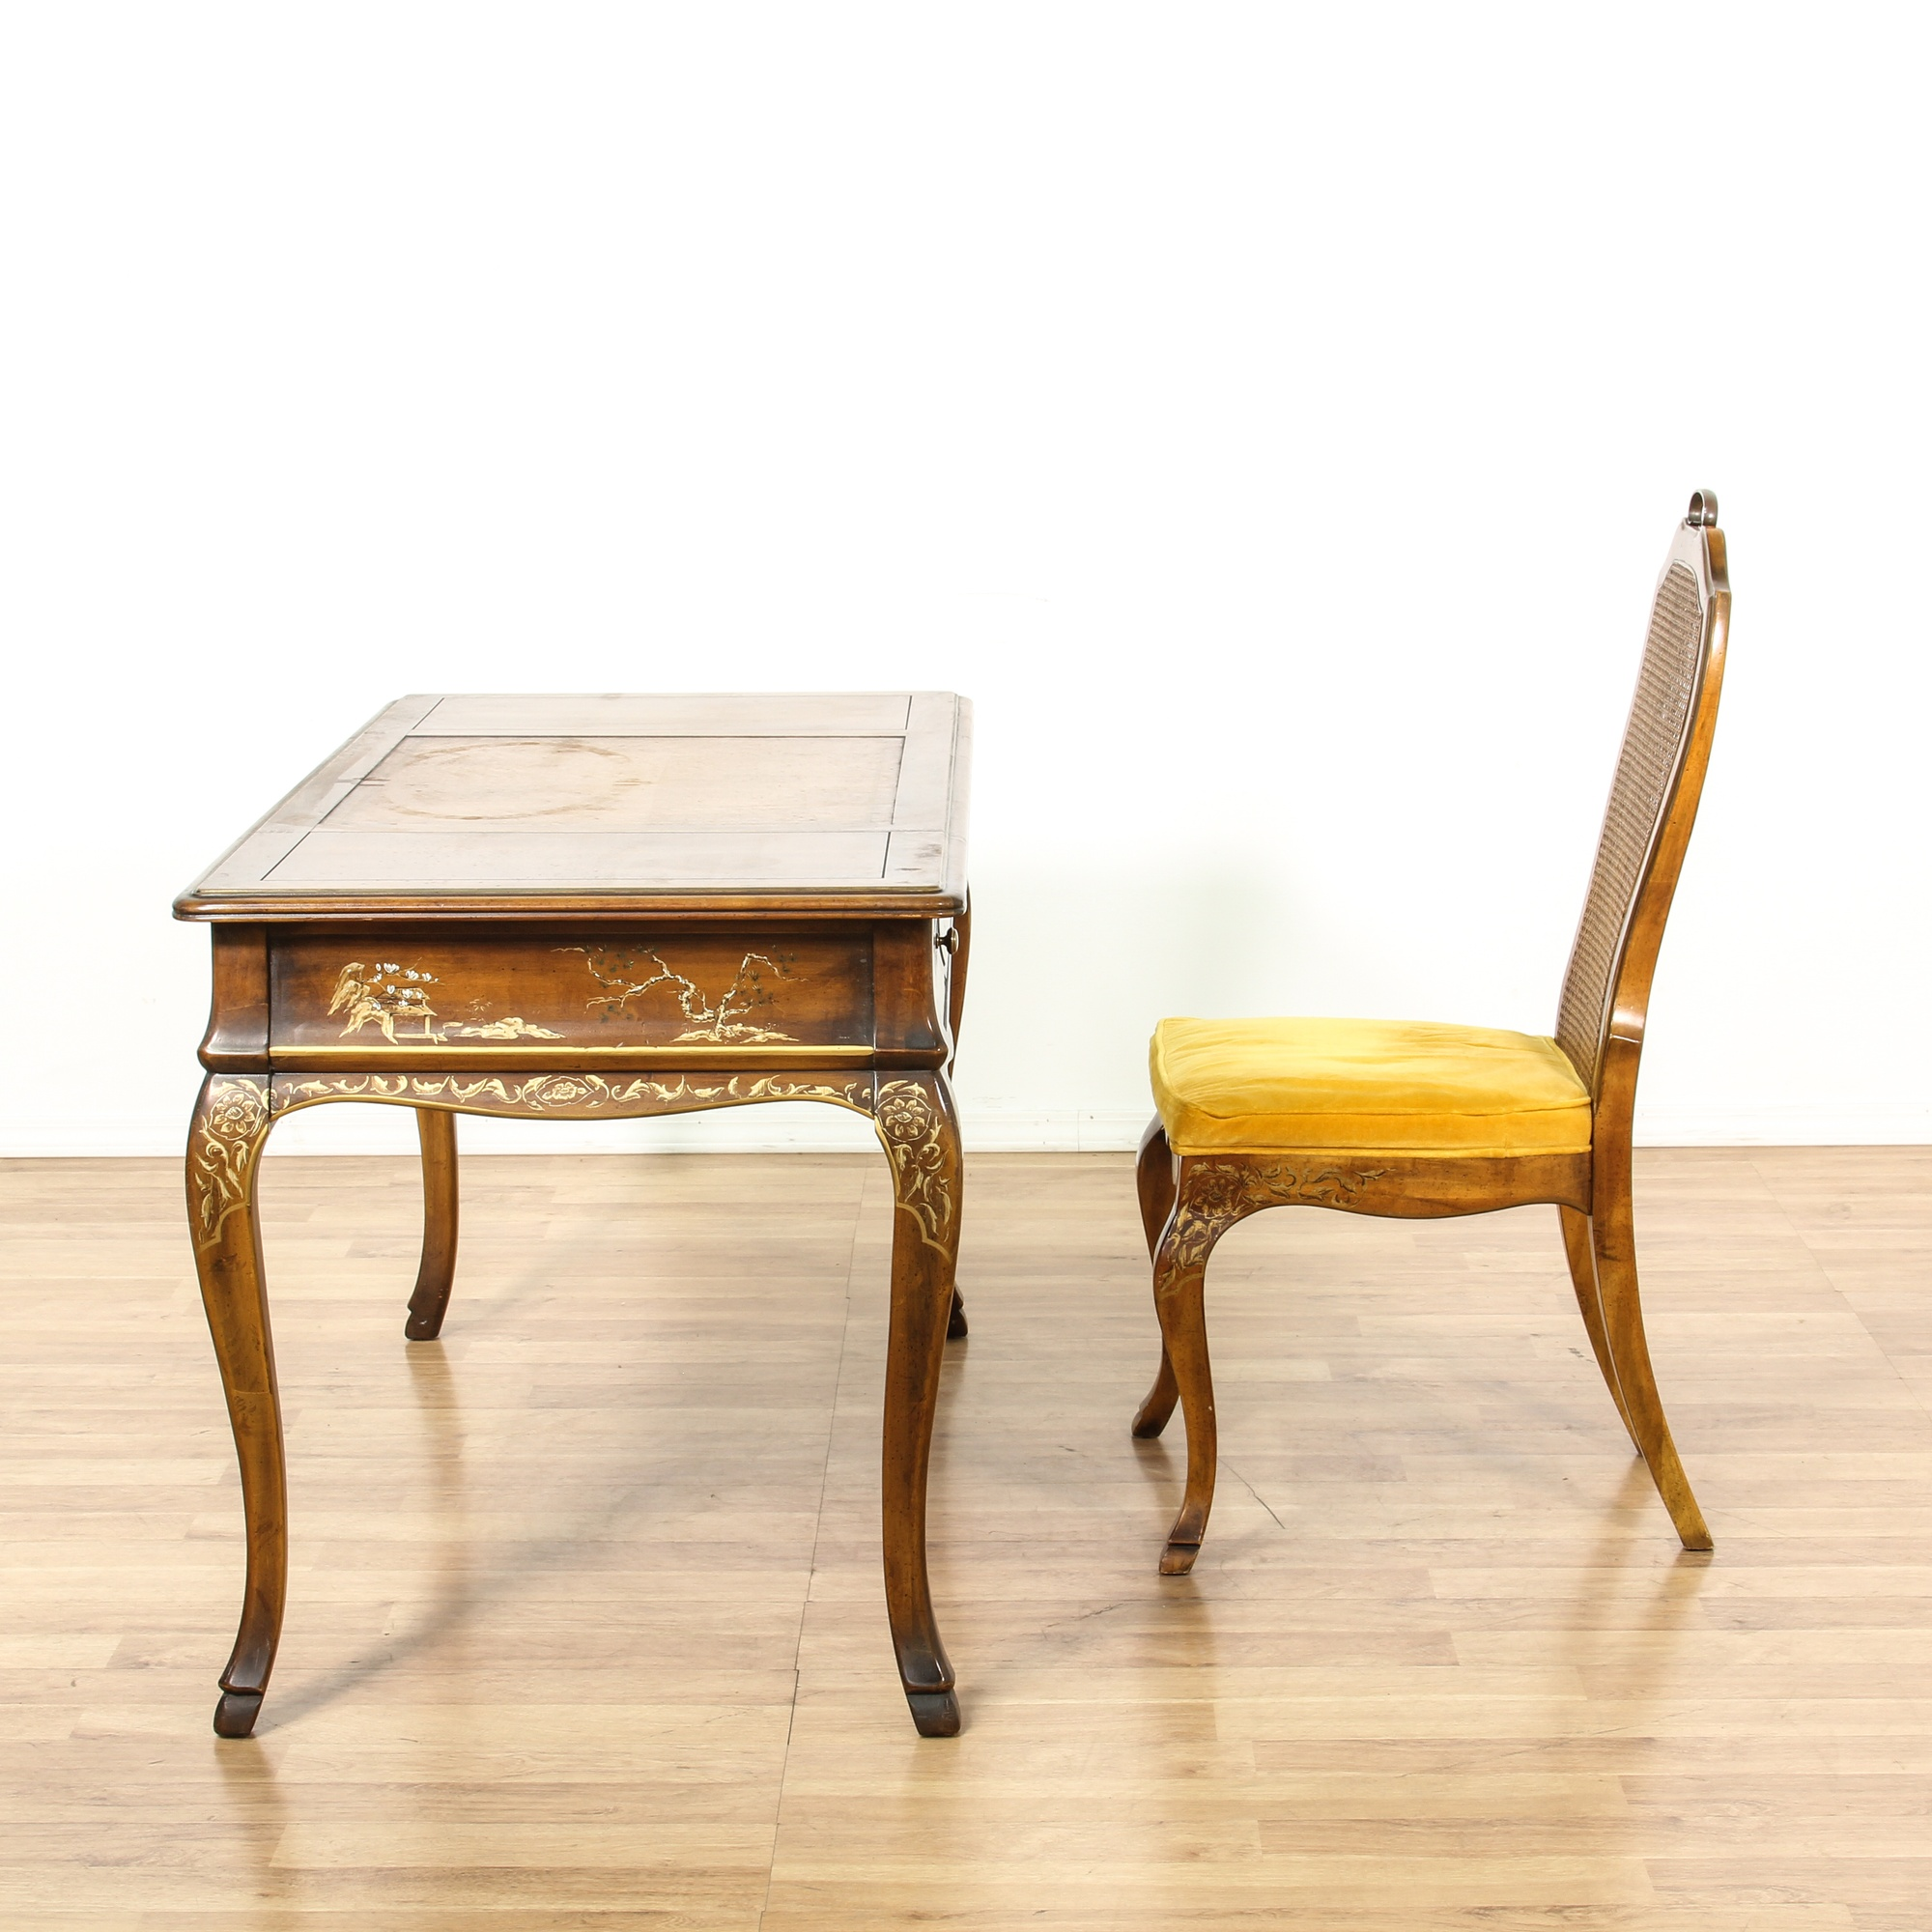 #BF8A0C Drexel French Painted Writing Desk & Chair Loveseat Vintage  with 2000x2000 px of Best Painted Writing Desk 20002000 image @ avoidforclosure.info